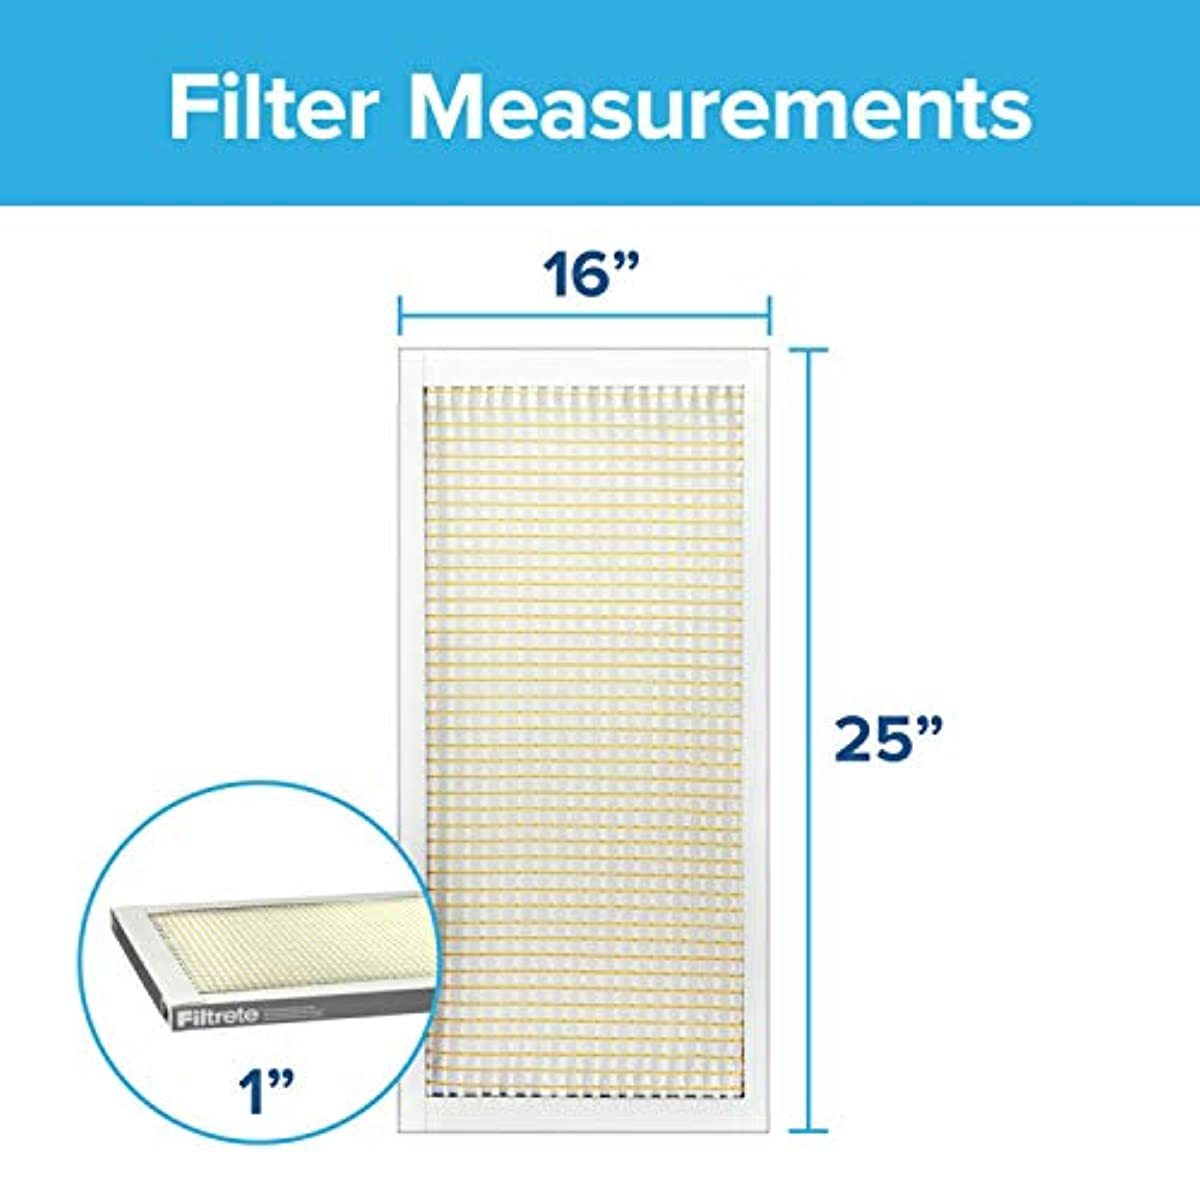 Filtrete 16x25x1, AC Furnace Air Filter, MPR 300, Clean Living Basic Dust, 6-Pack (Exact Dimensions 15.69 x 24.69 x 0.81)